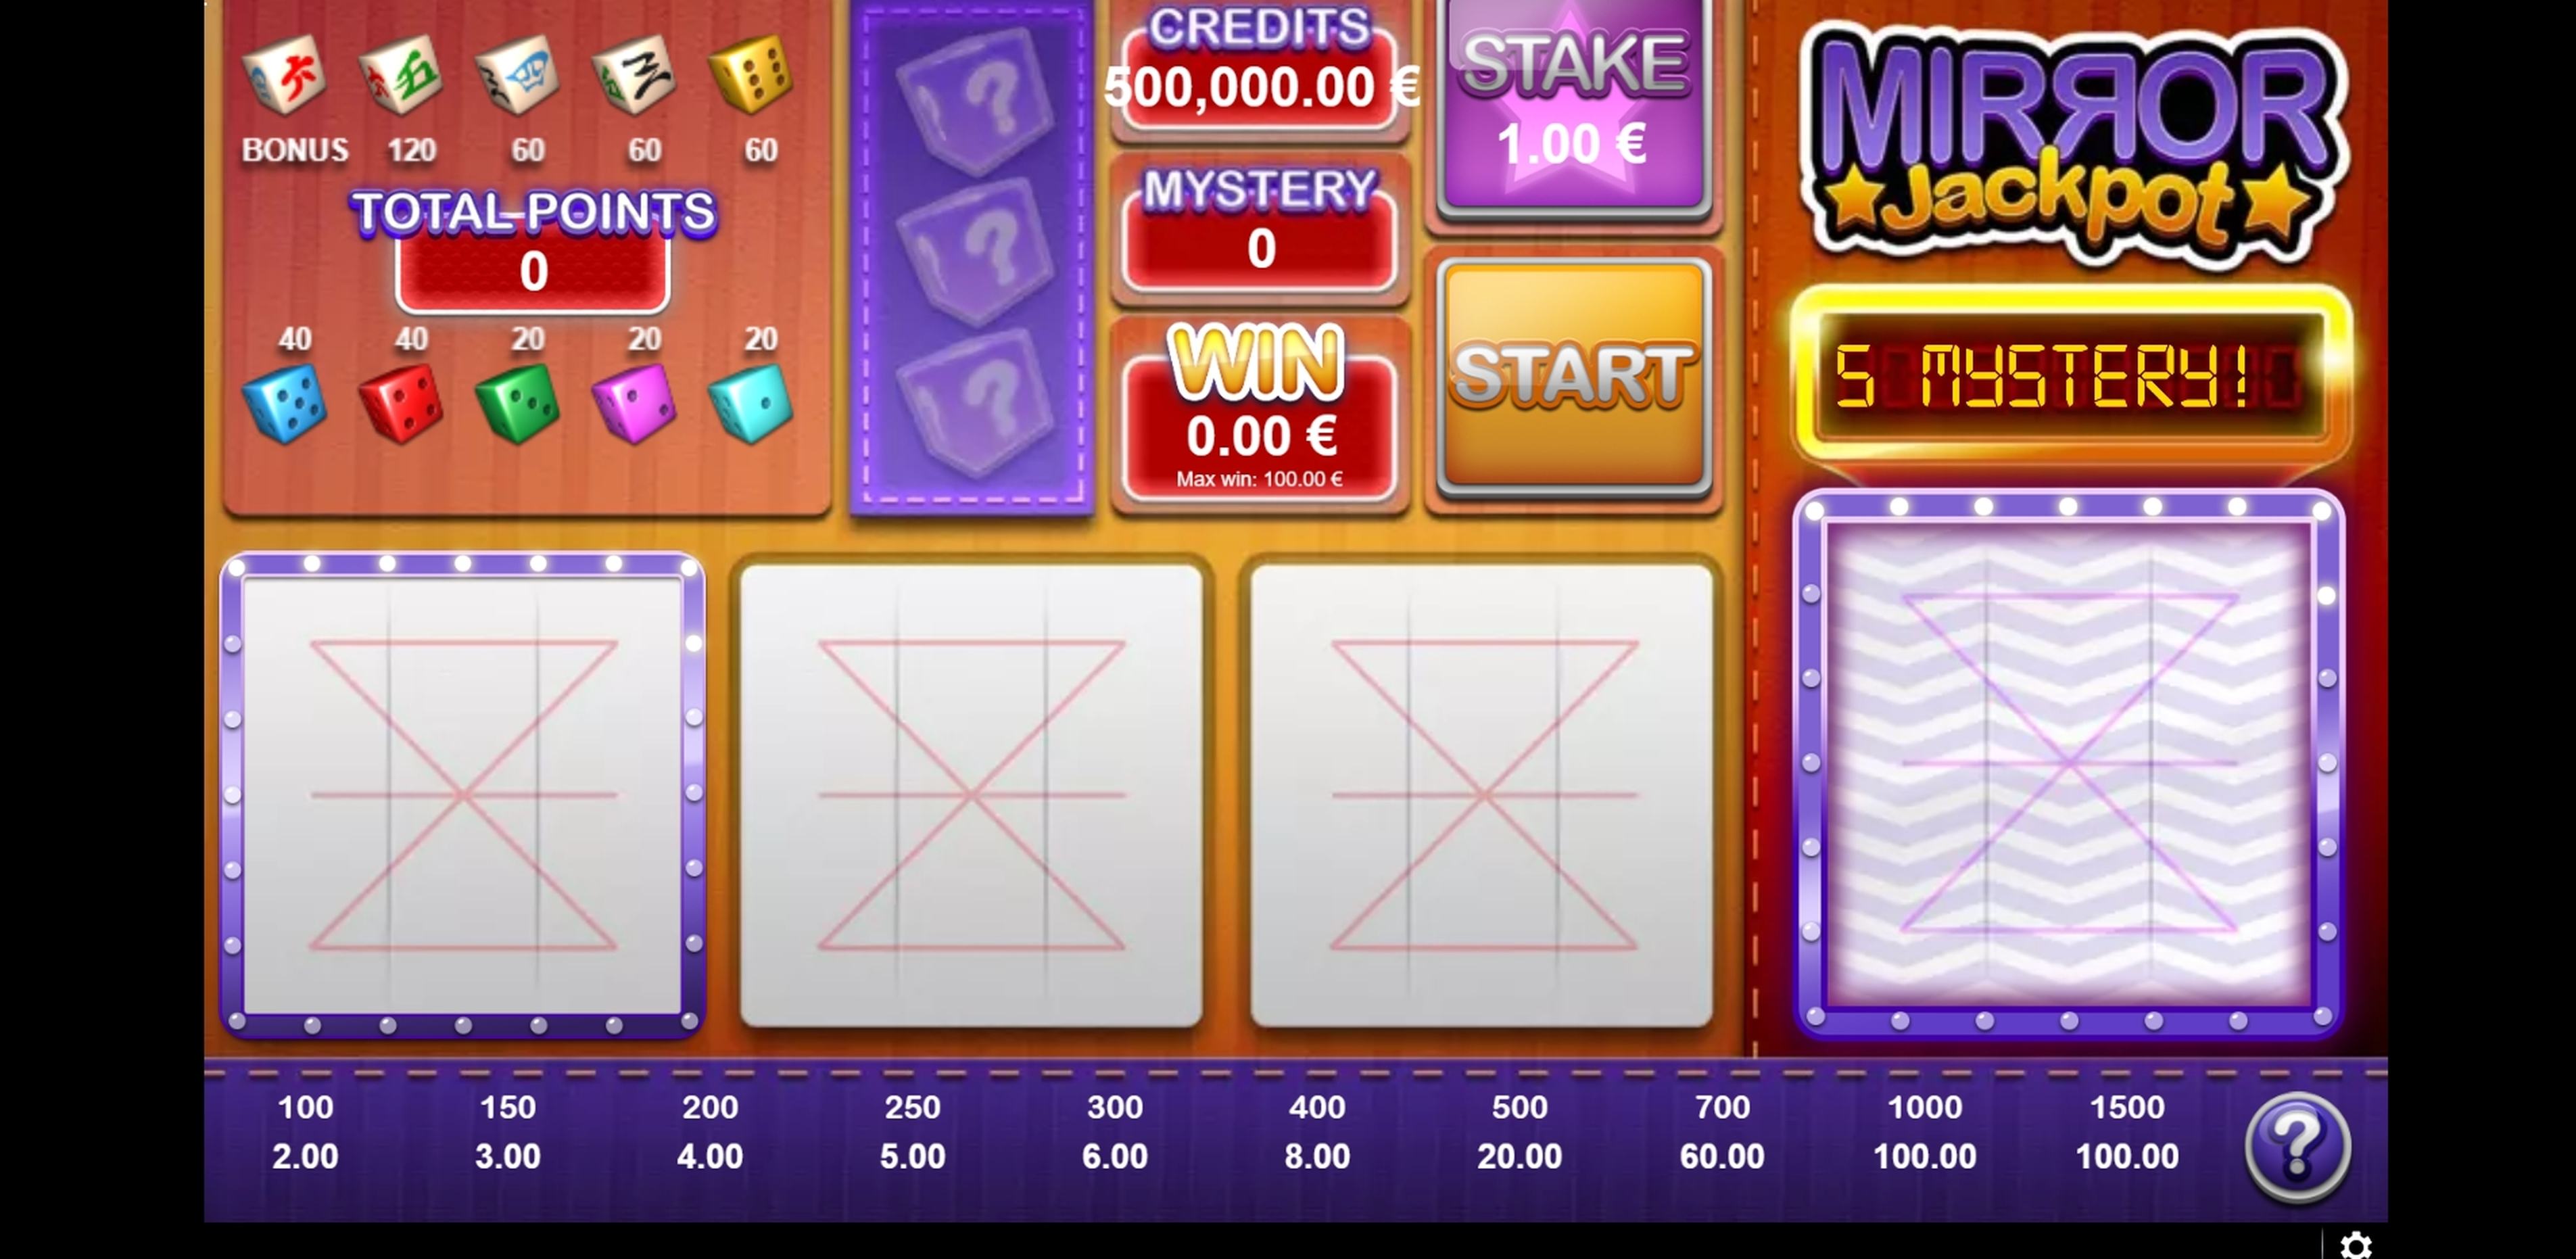 Reels in Mirror Jackpot Slot Game by GAMING1